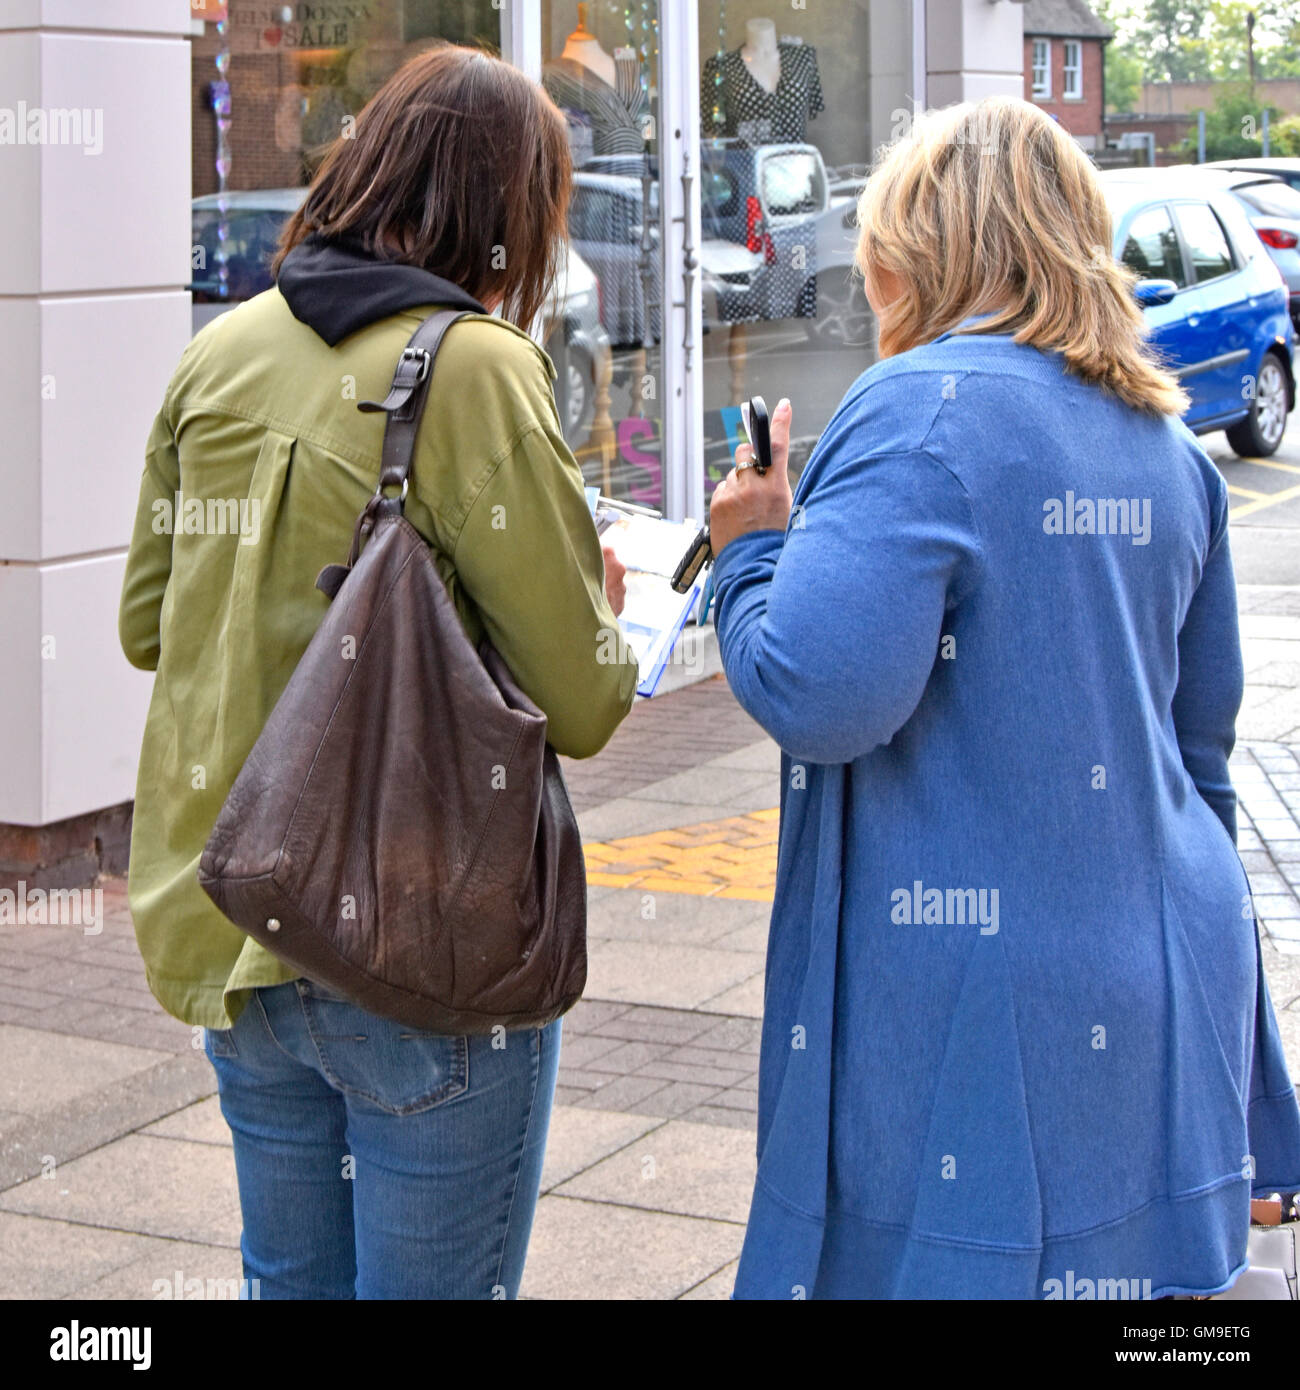 Woman holding clipboard (data entered blurred) interview questioning woman shopper small UK town centre street market - Stock Image